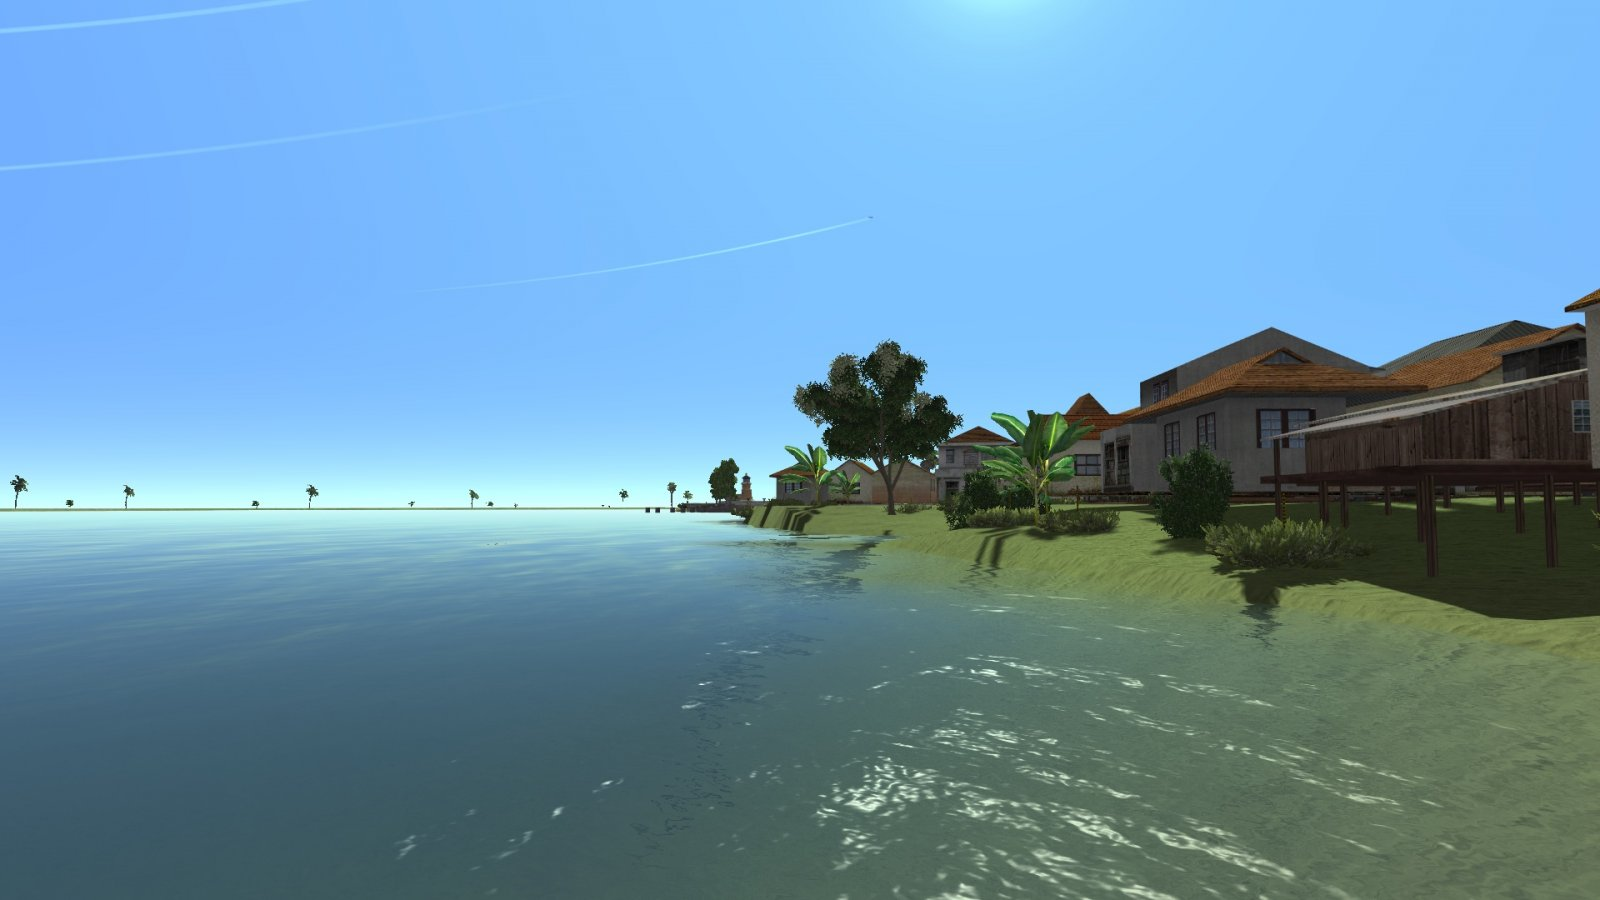 cxl_screenshot_porto santo_12.jpg